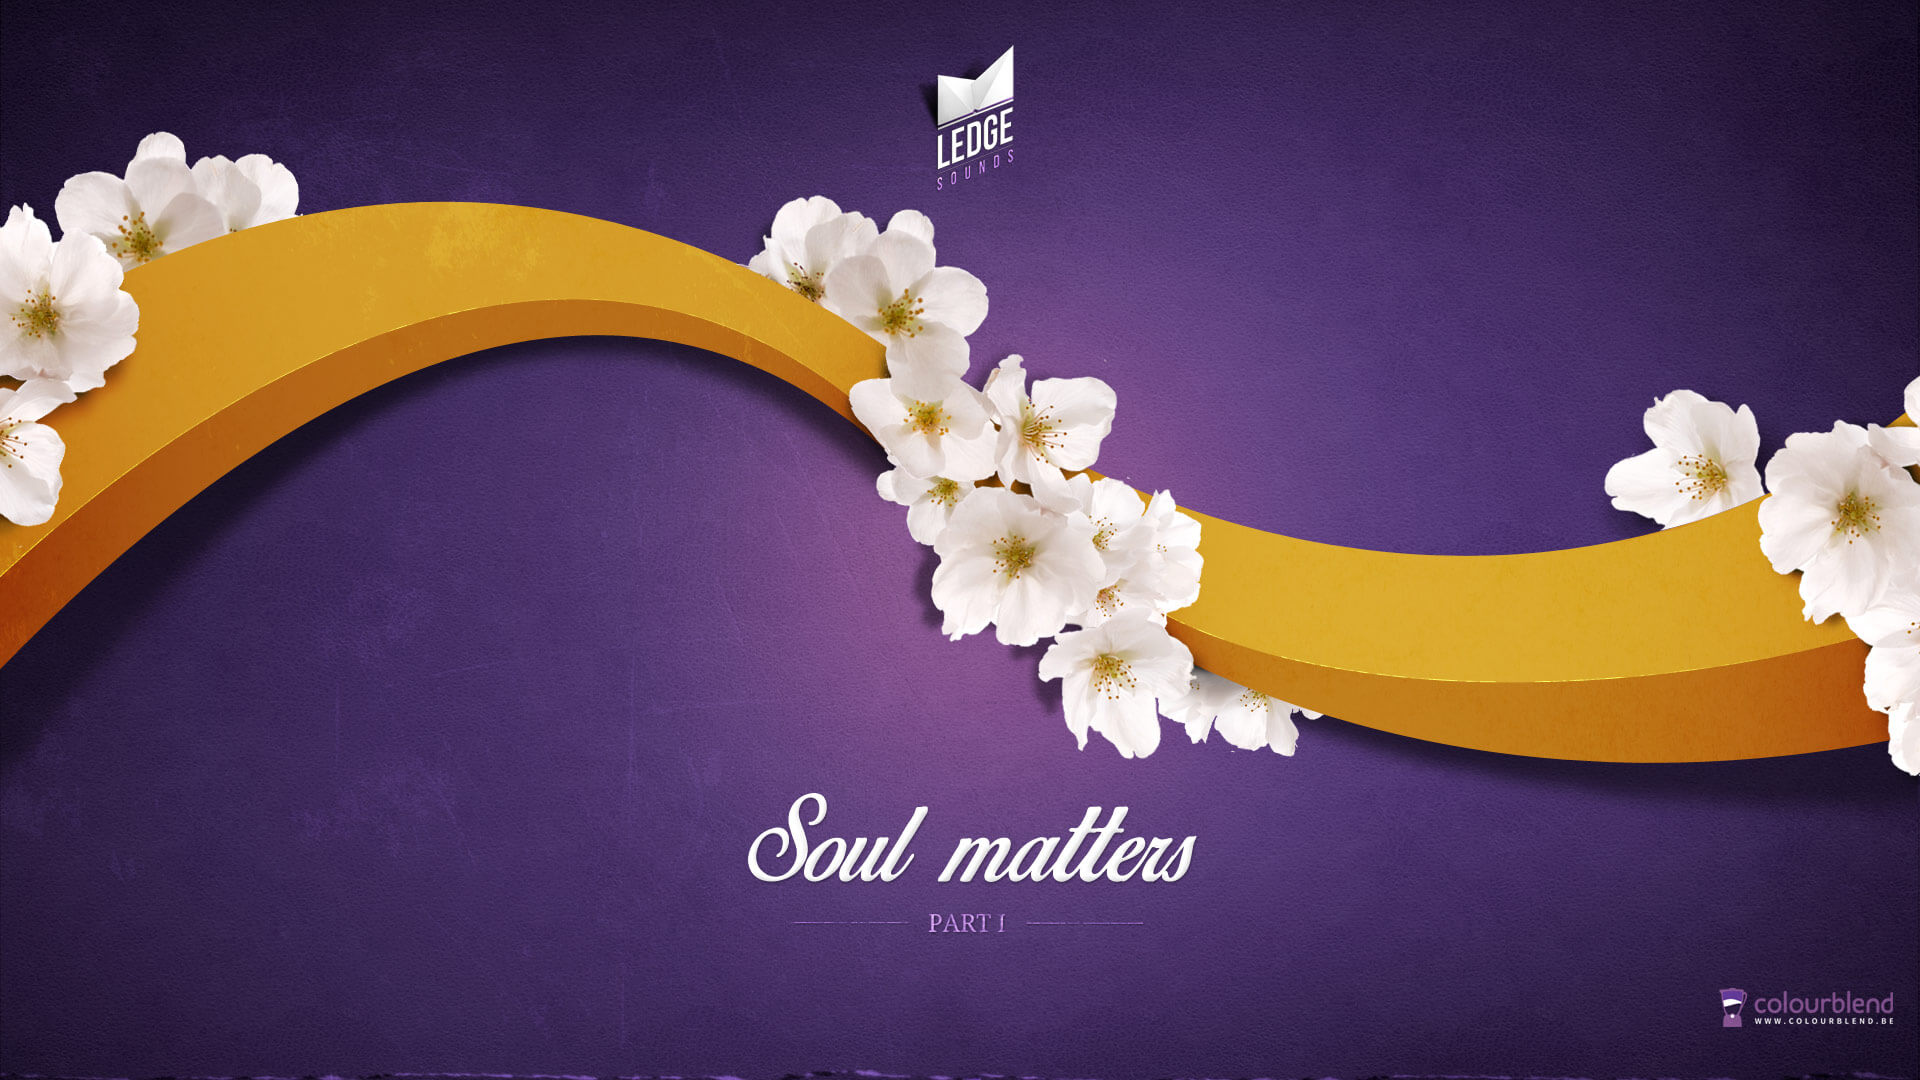 Soul Matters - Part 1 wallpaper